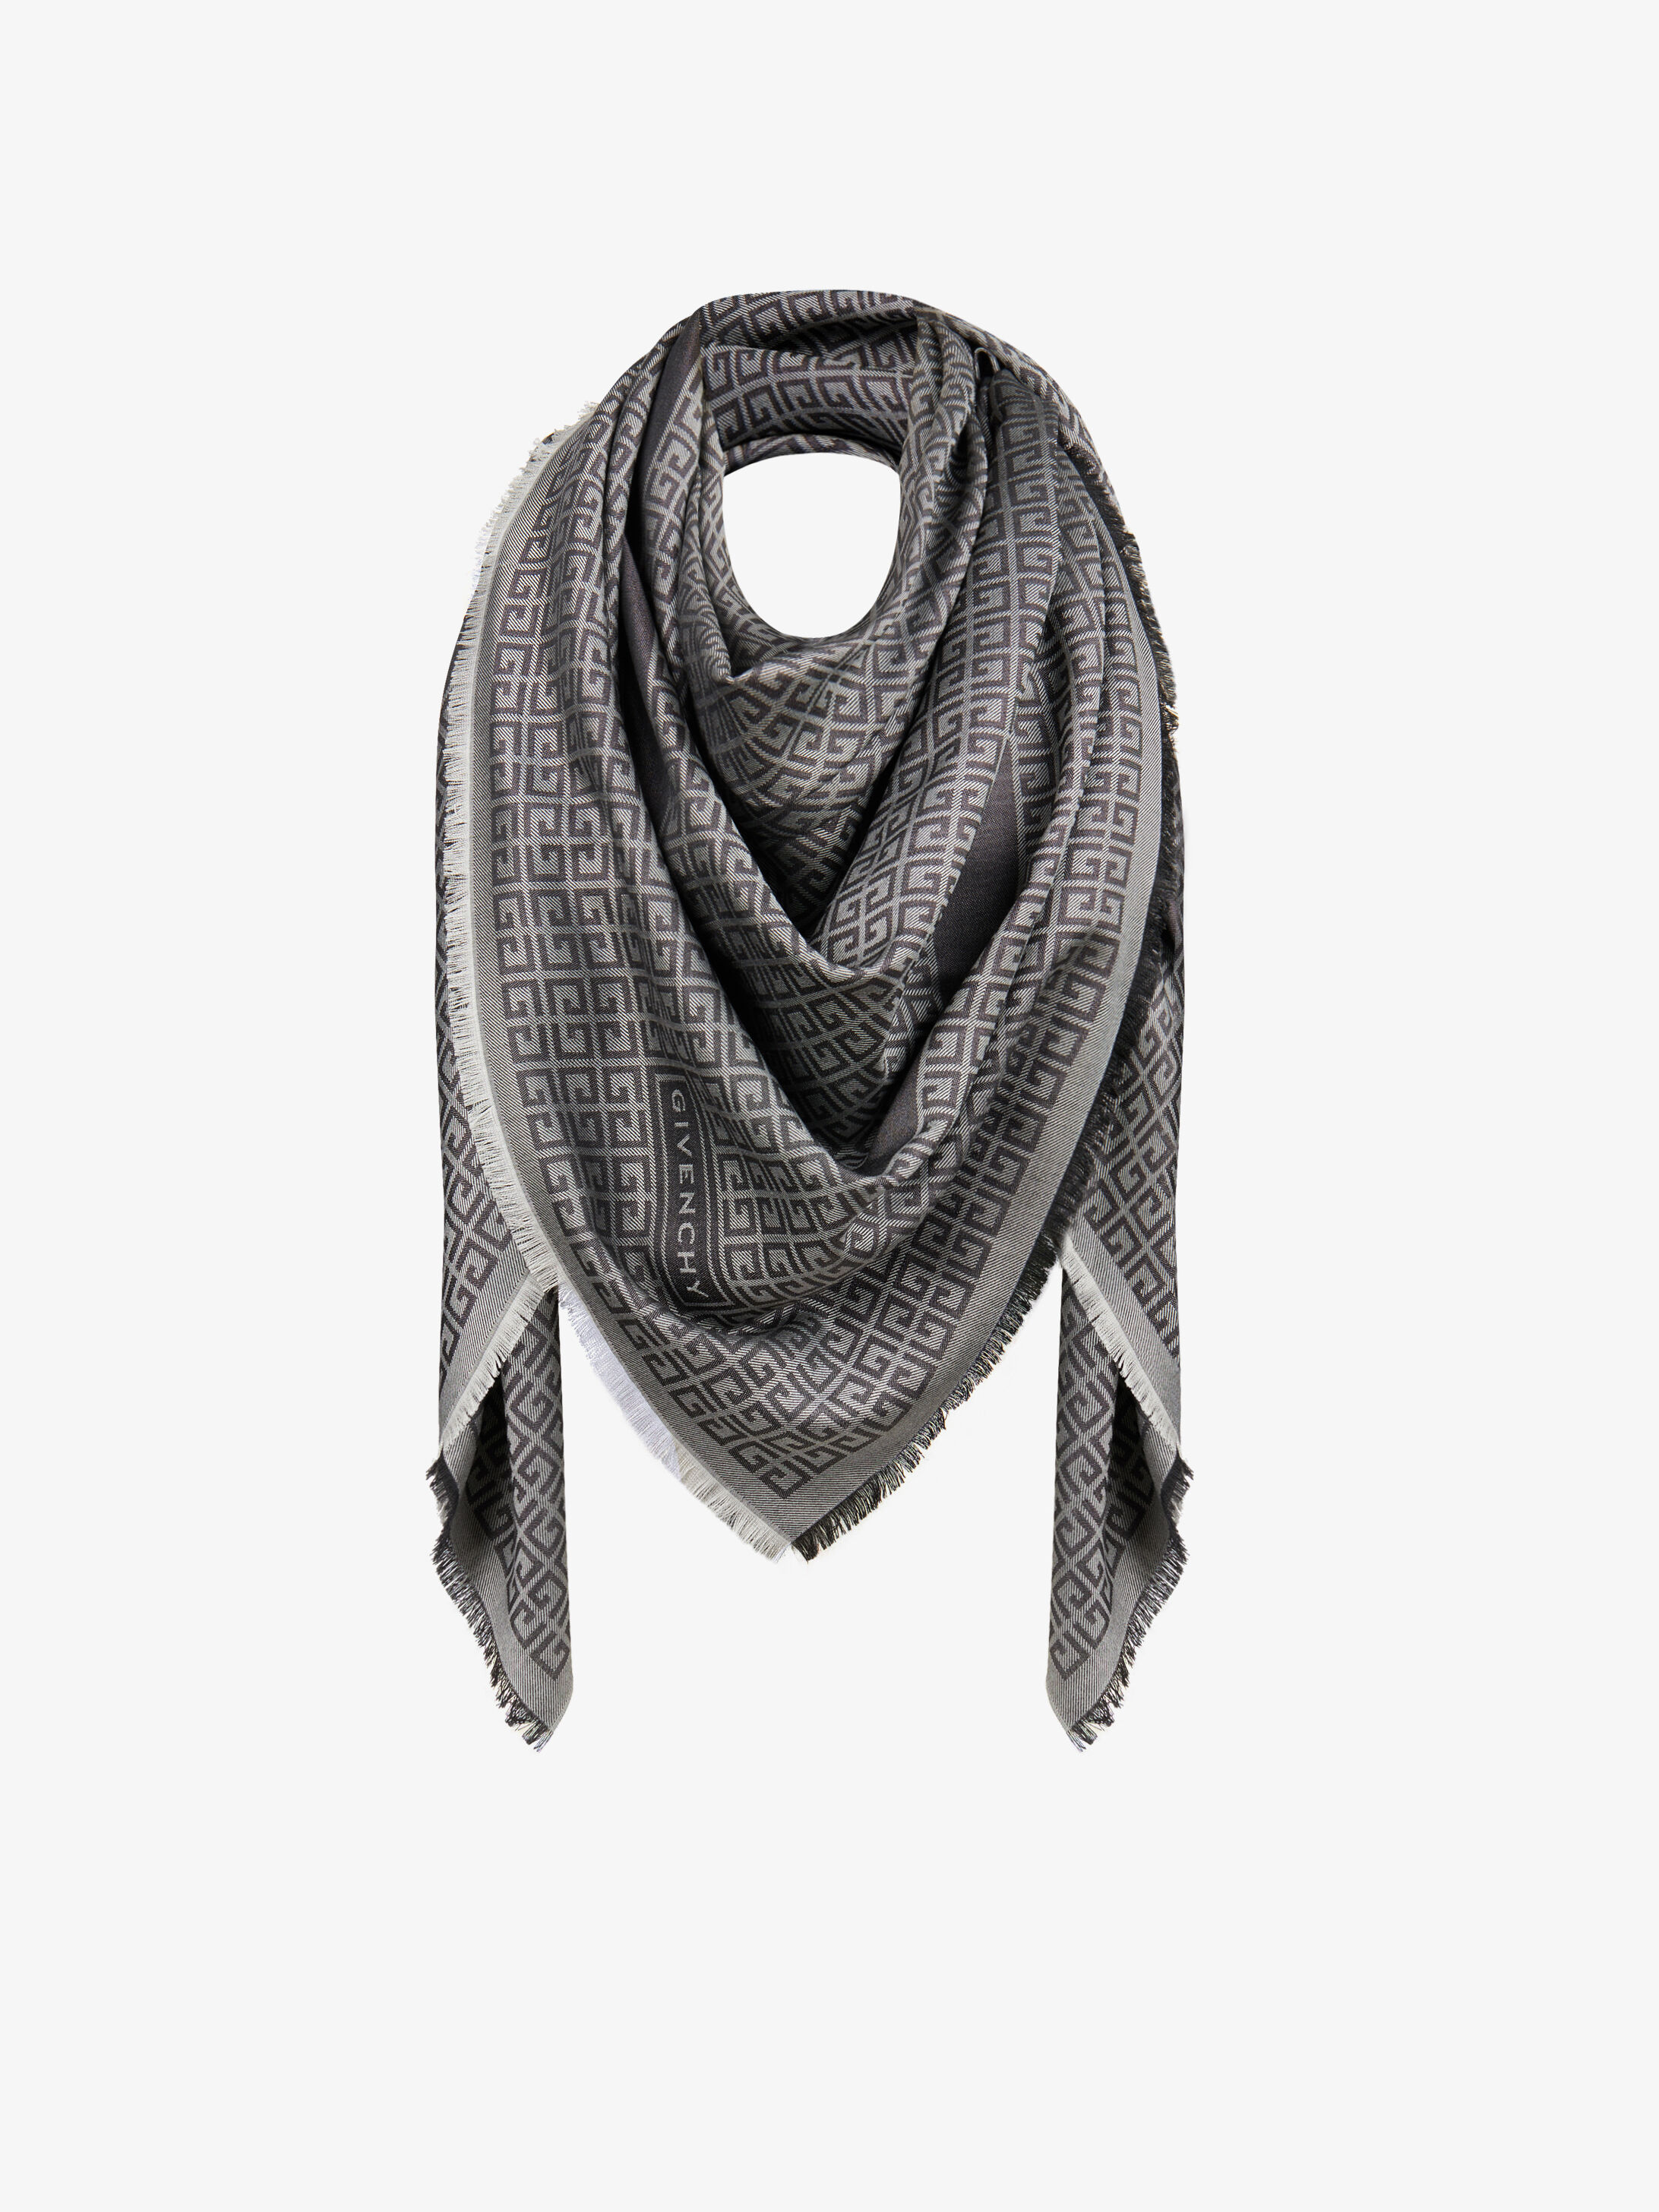 75a1720f01d Women's Scarves collection by Givenchy. | GIVENCHY Paris